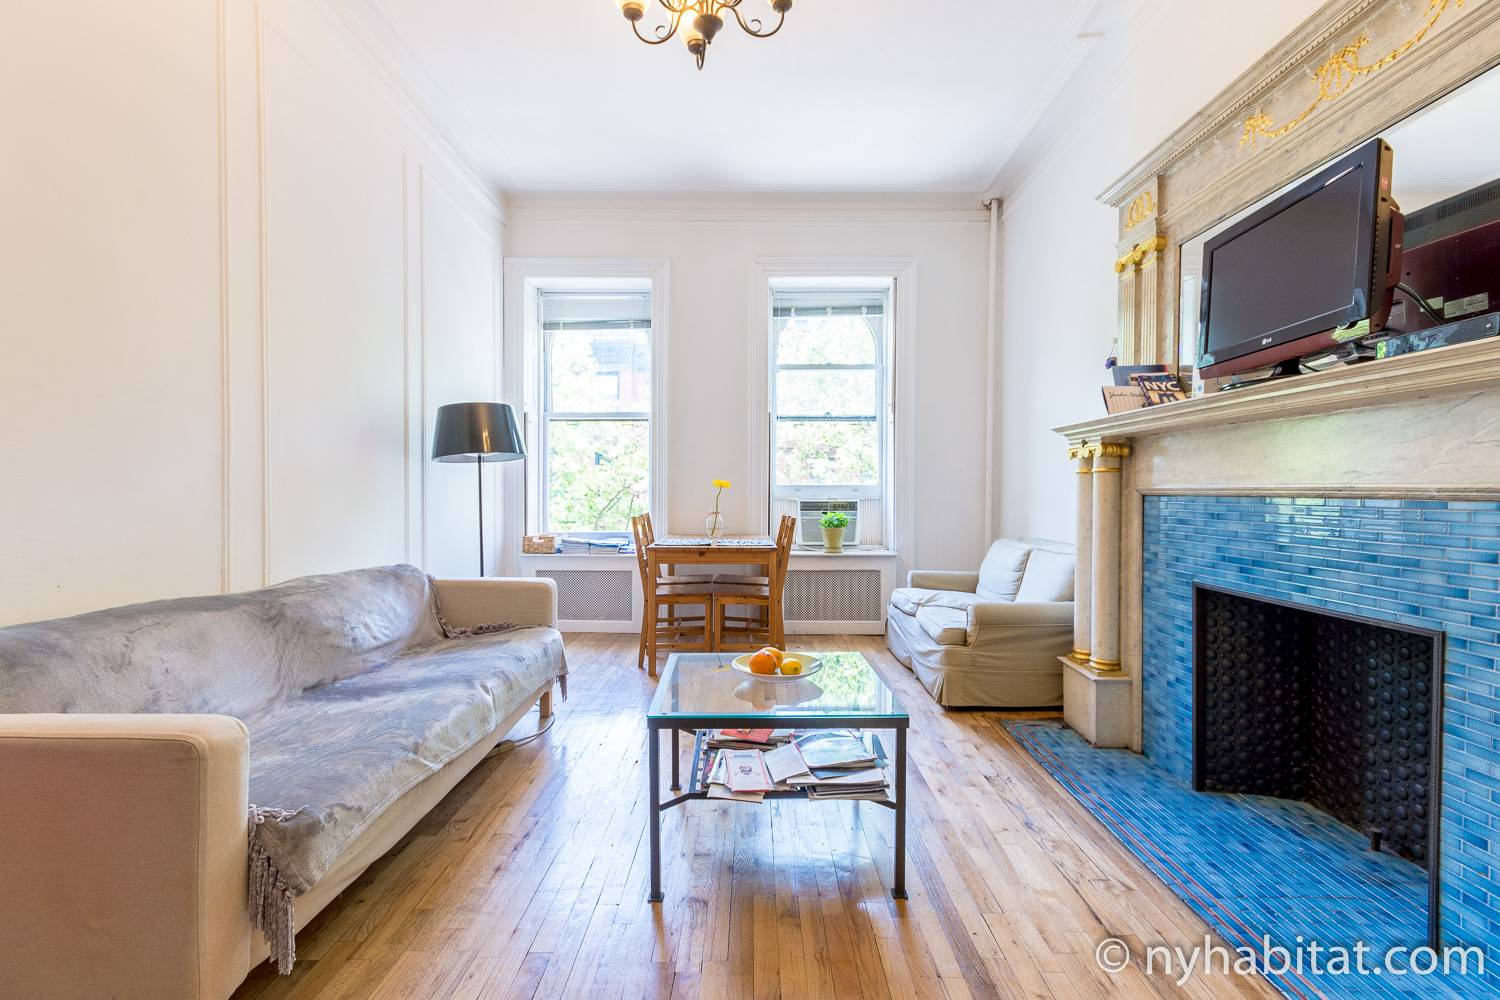 Image of living room of NYC 1 bedroom furnished apartment NY- 14557 on the Upper West Side